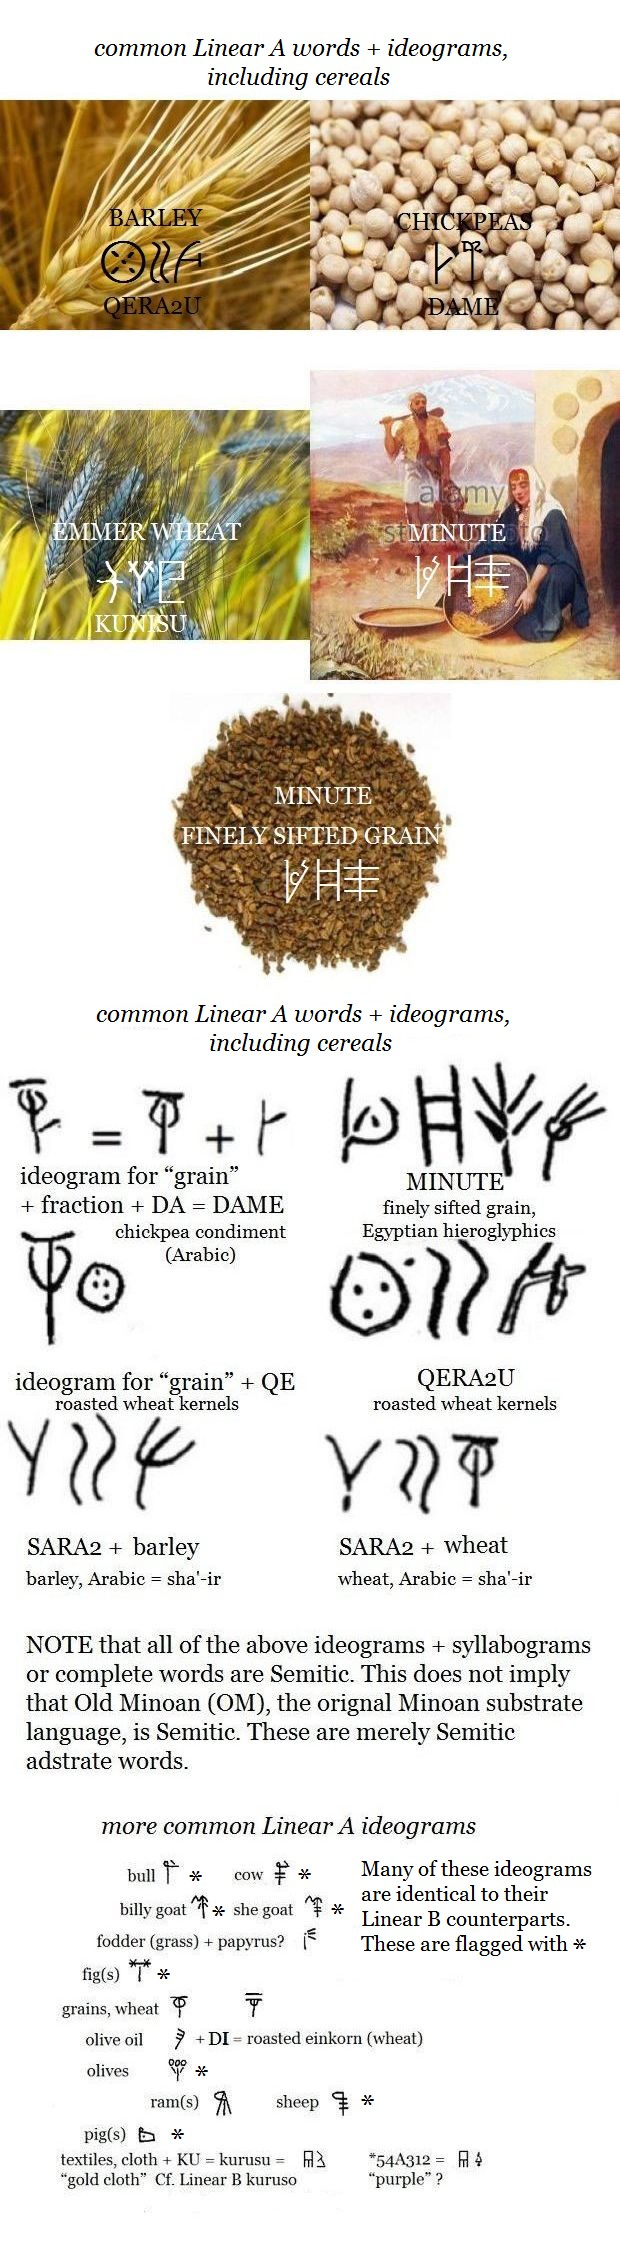 all Linear A ideograms grains